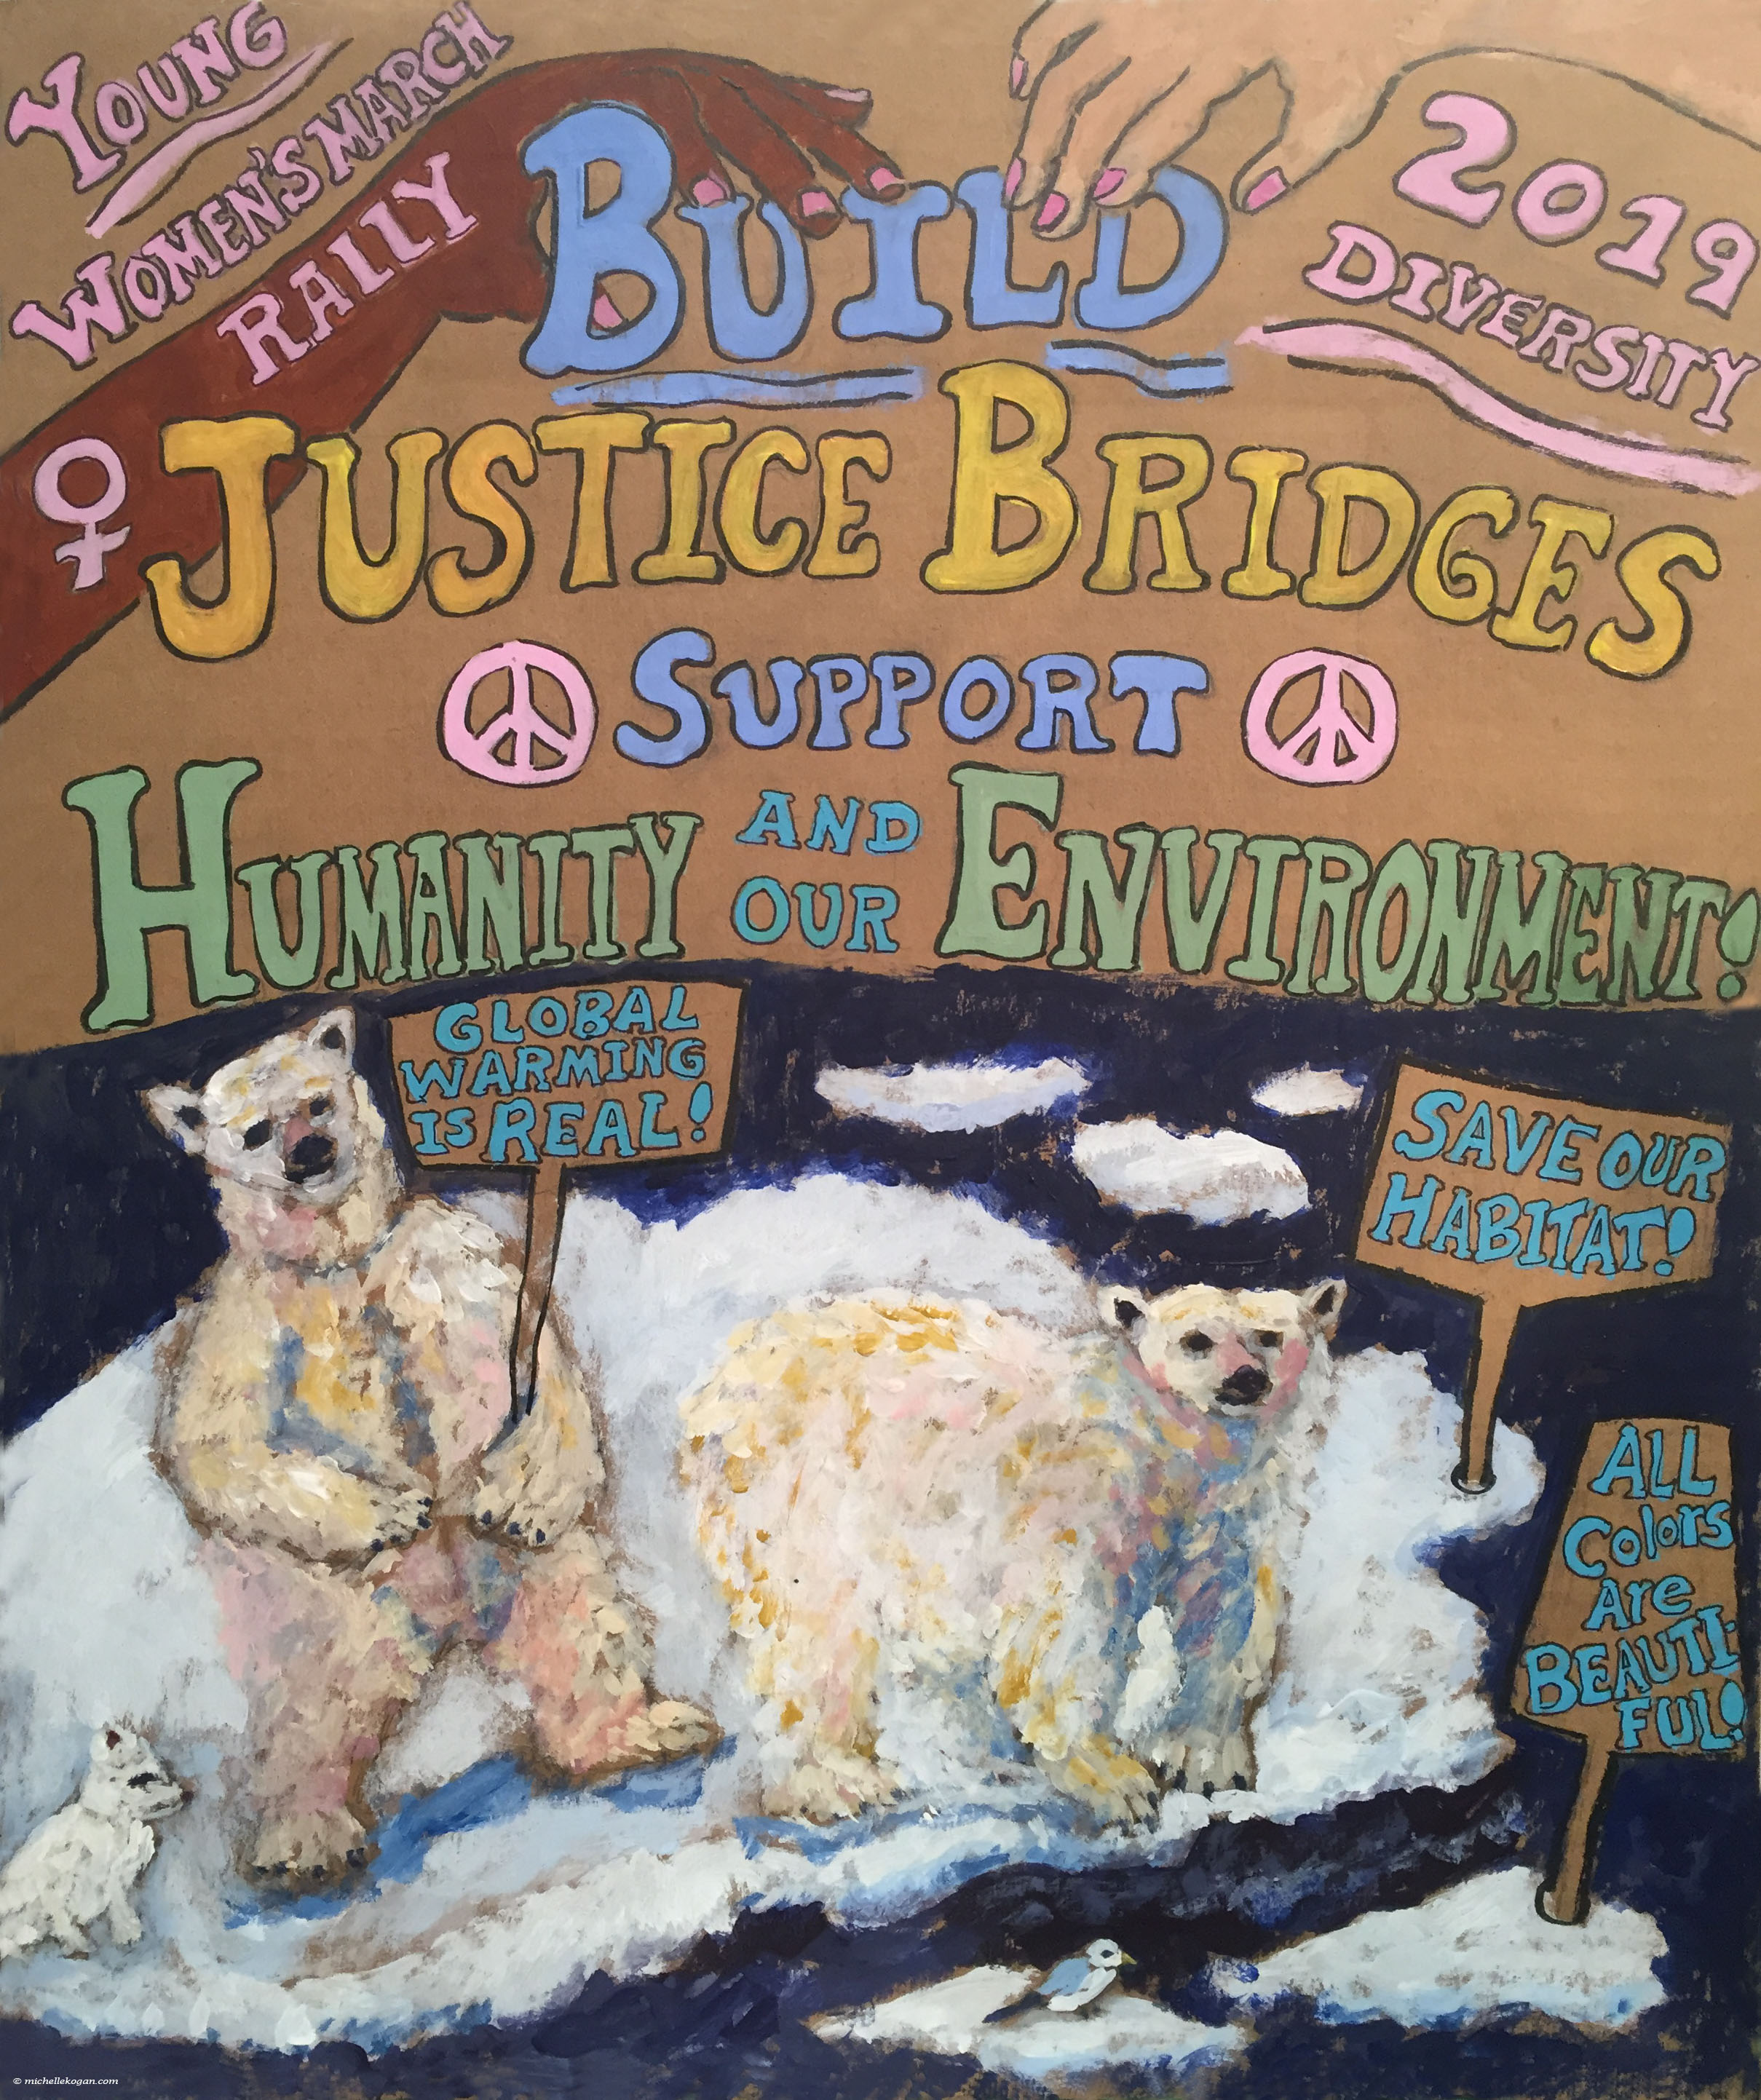 1-build-justice-bridges-poster-1-179-2019